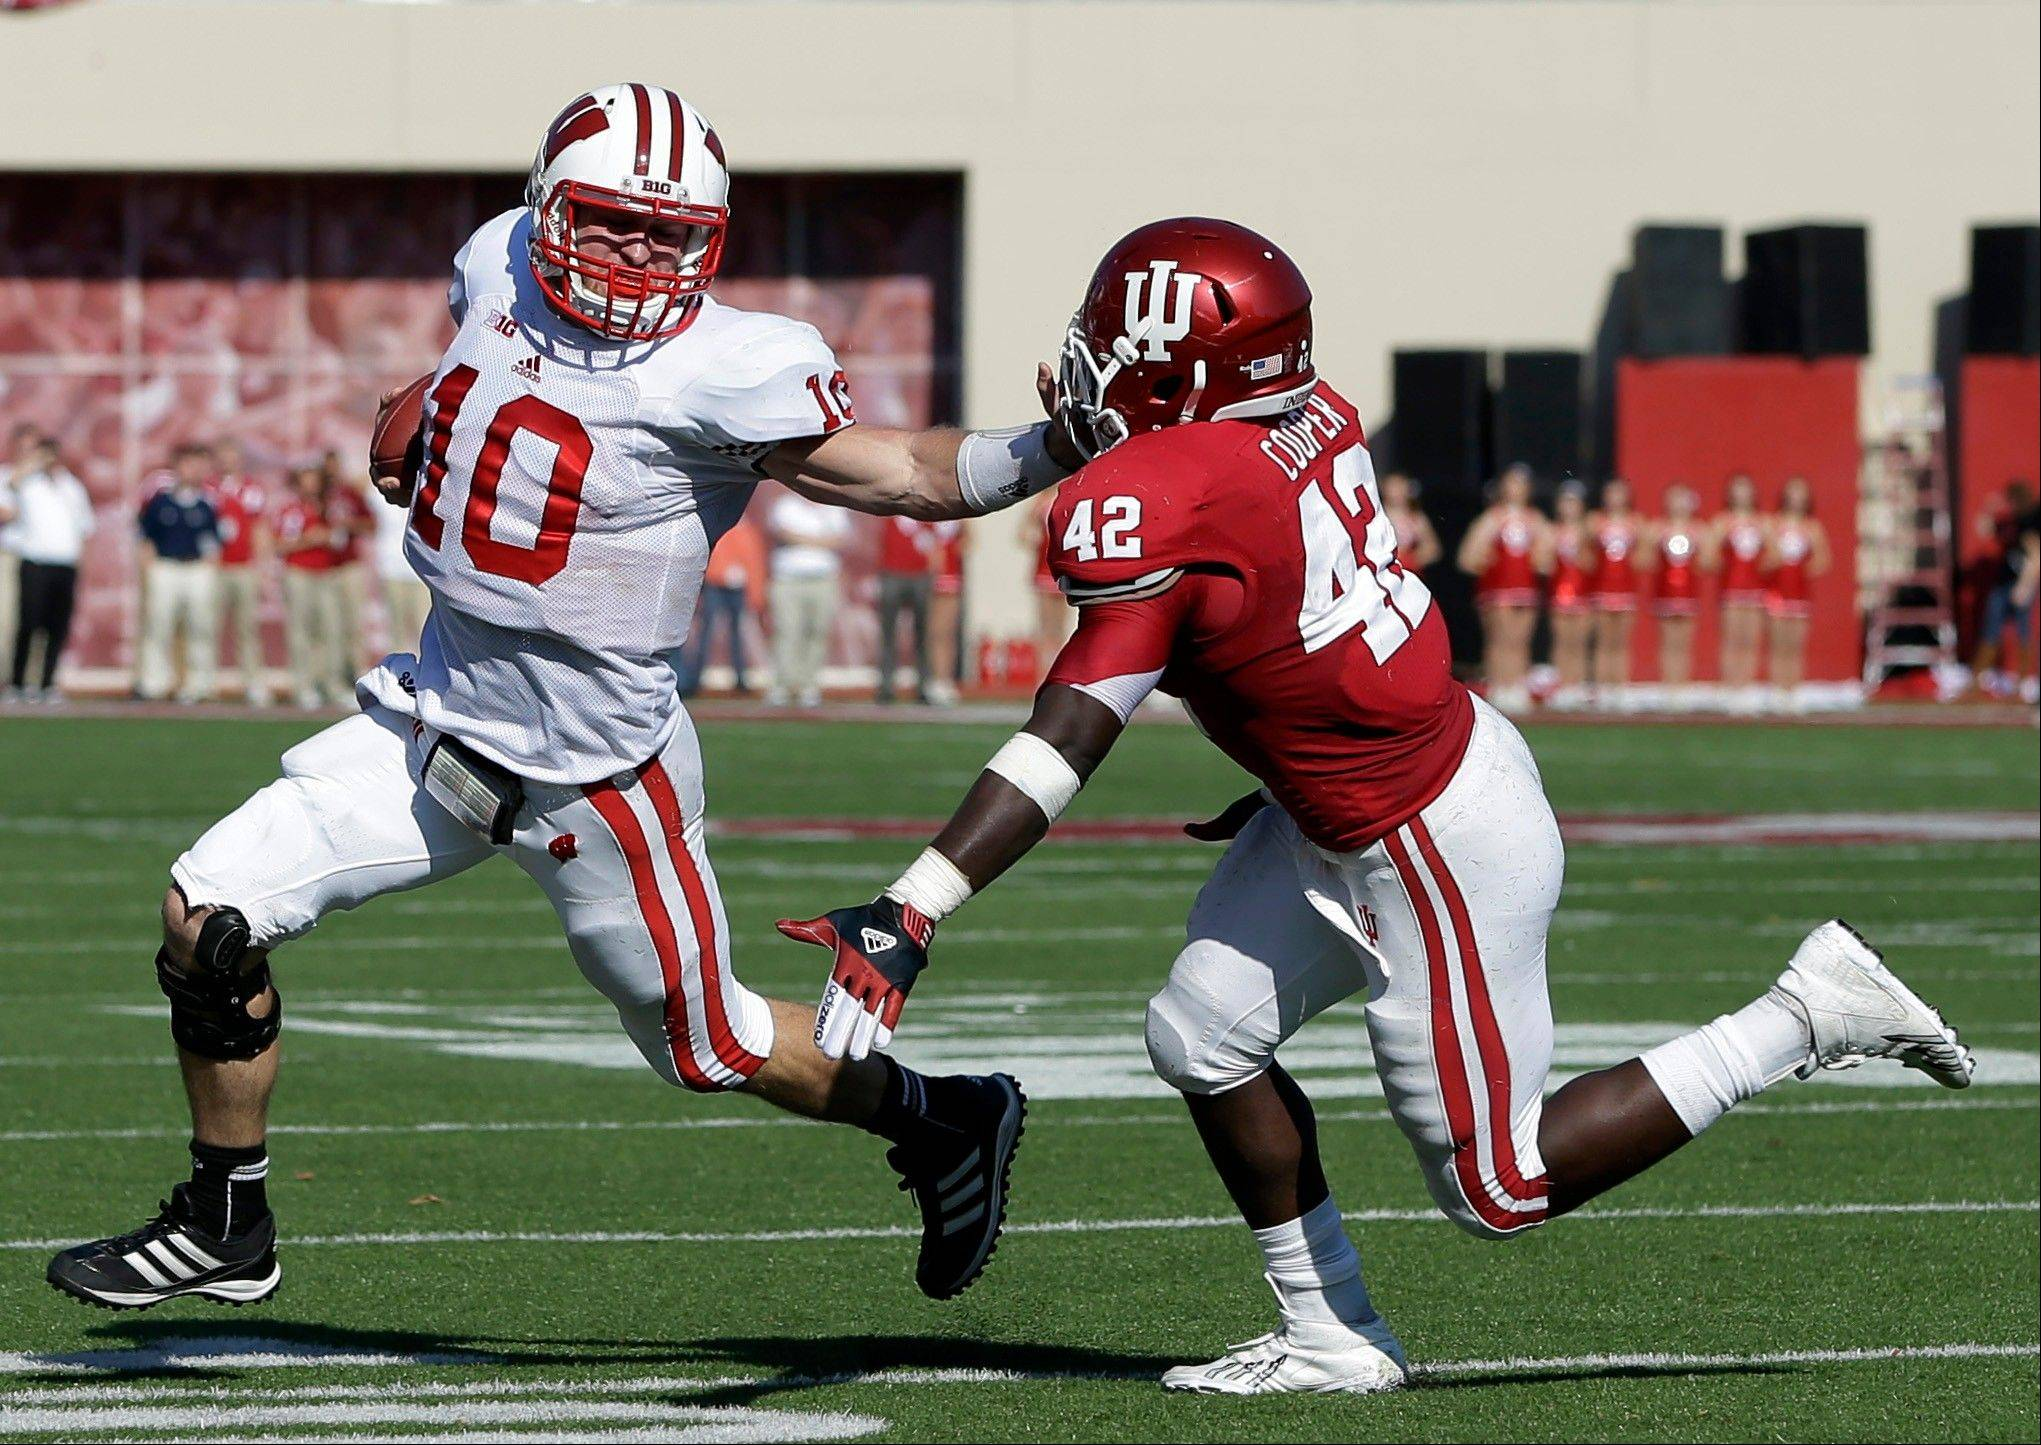 Wisconsin quarterback Curt Phillips (10) is chased by Indiana's David Cooper during the first half of an NCAA college football game, Saturday, Nov. 10, 2012, in Bloomington, Ind. (AP Photo/Darron Cummings)